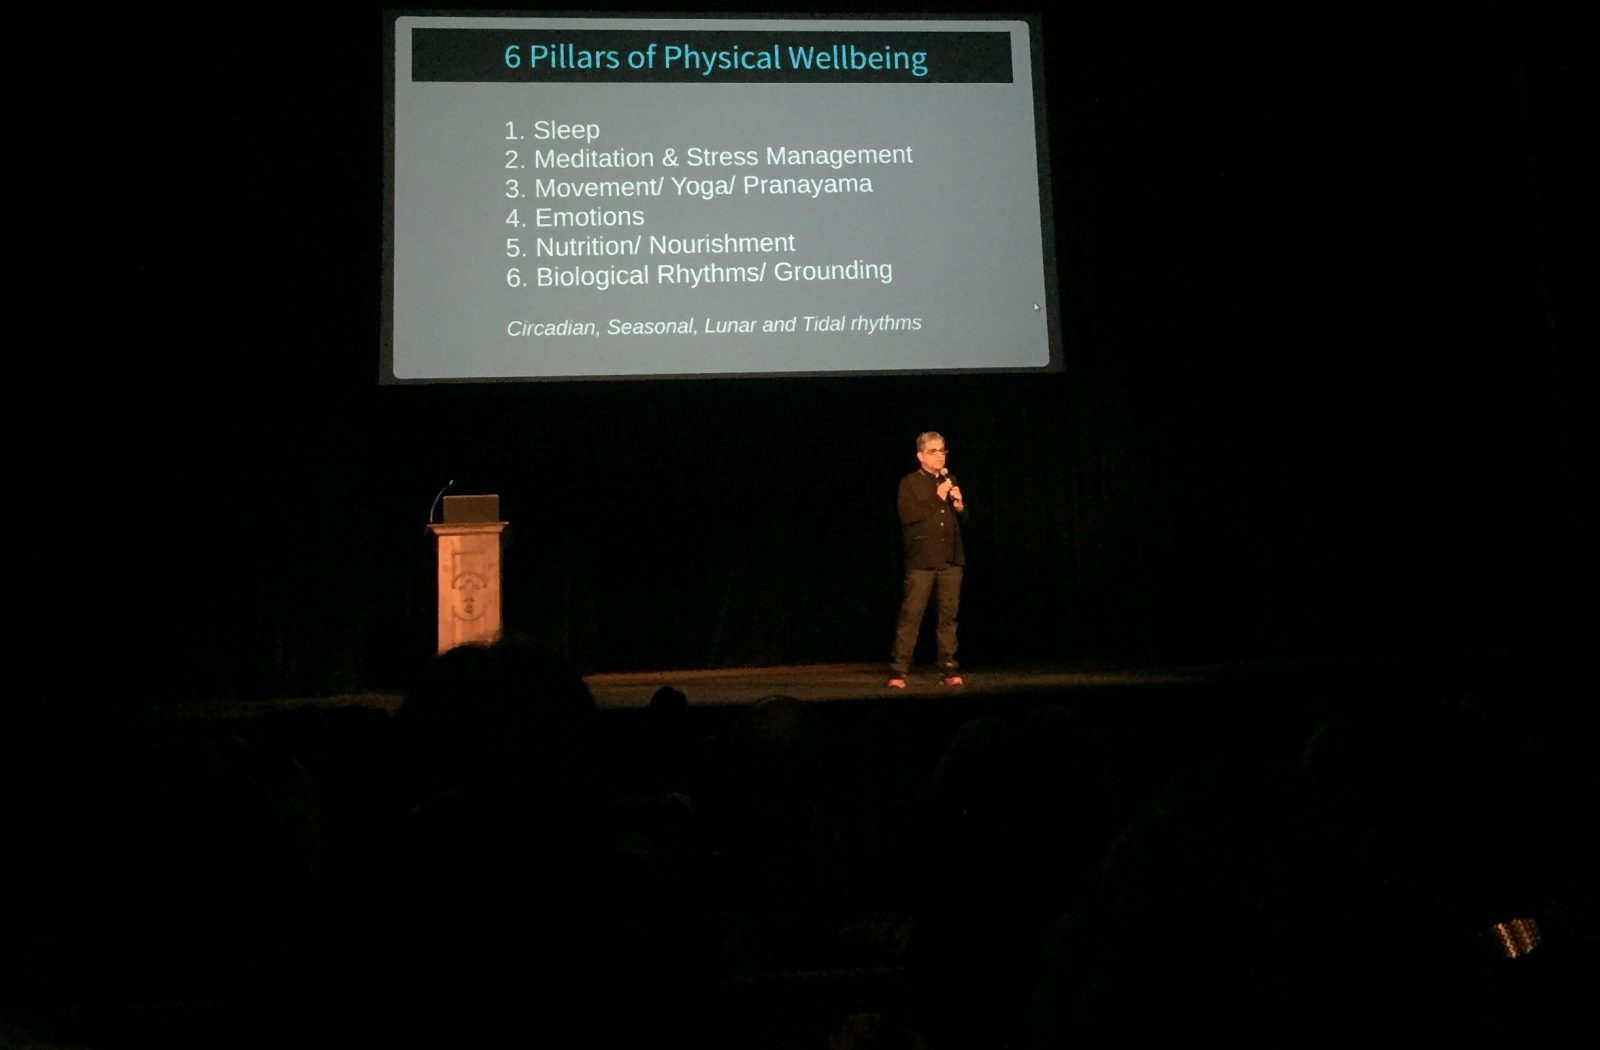 The Healing Self | Deepak Chopra shares 6 pillars of physical wellbeing